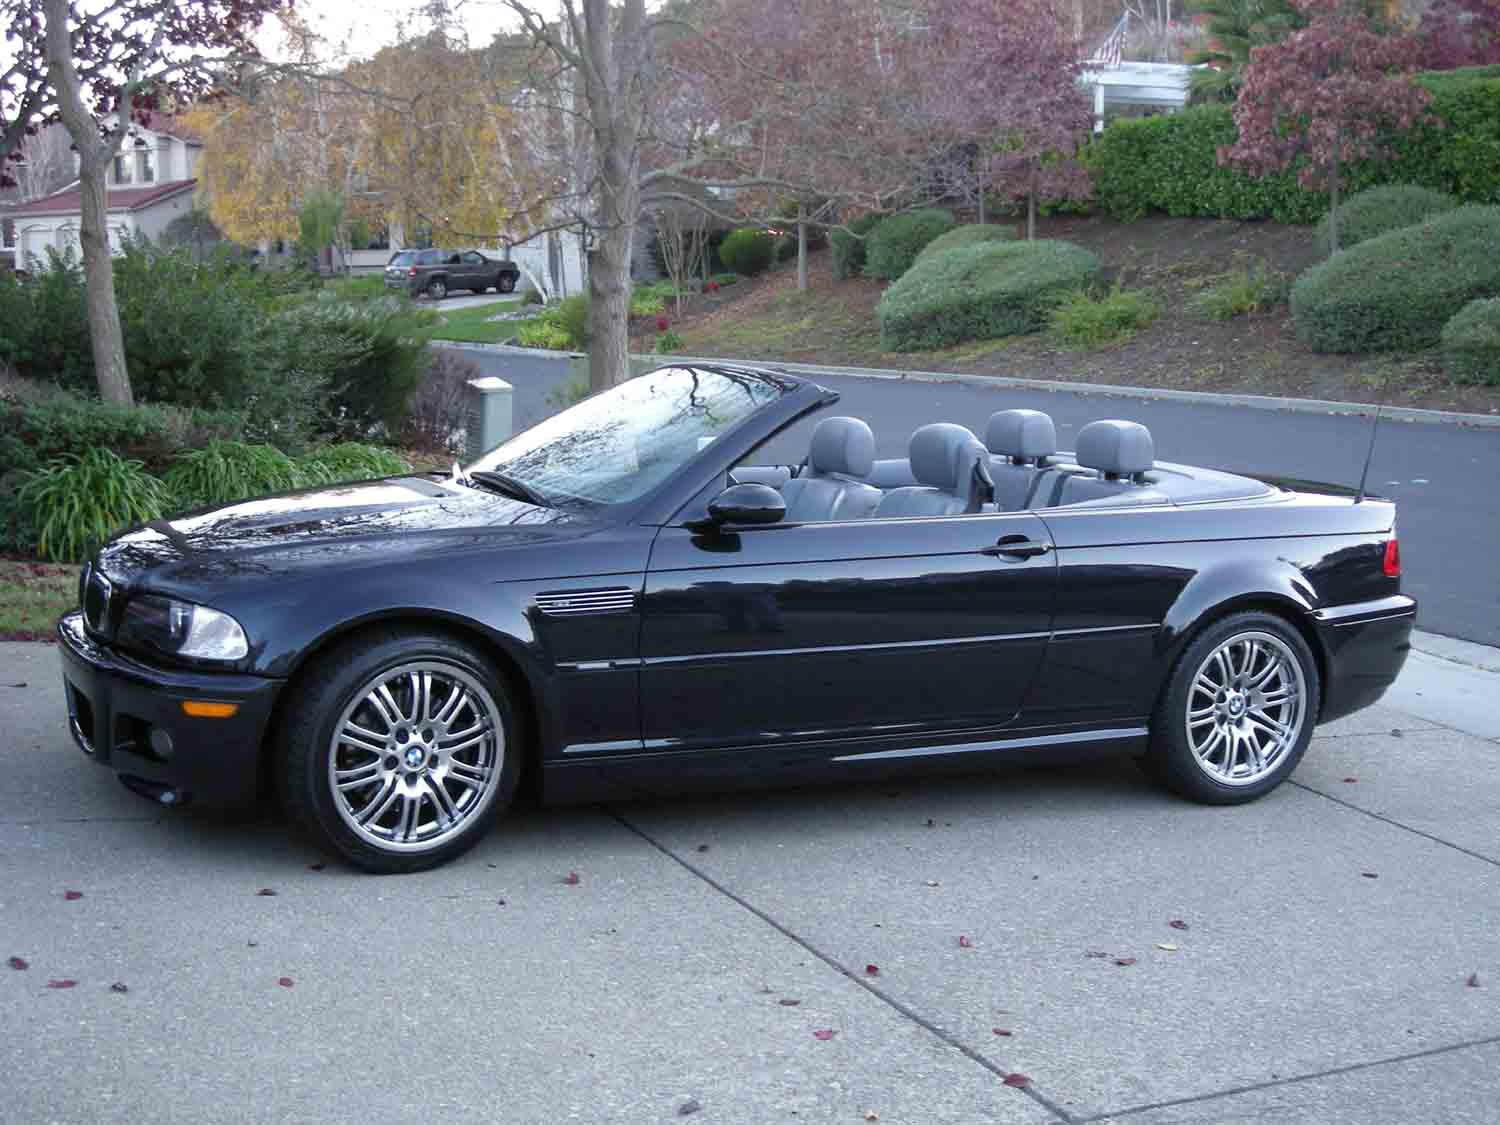 BMW Convertible 2004 bmw m3 coupe for sale FS: 2004 BMW M3 Convertible - LotusTalk - The Lotus Cars Community